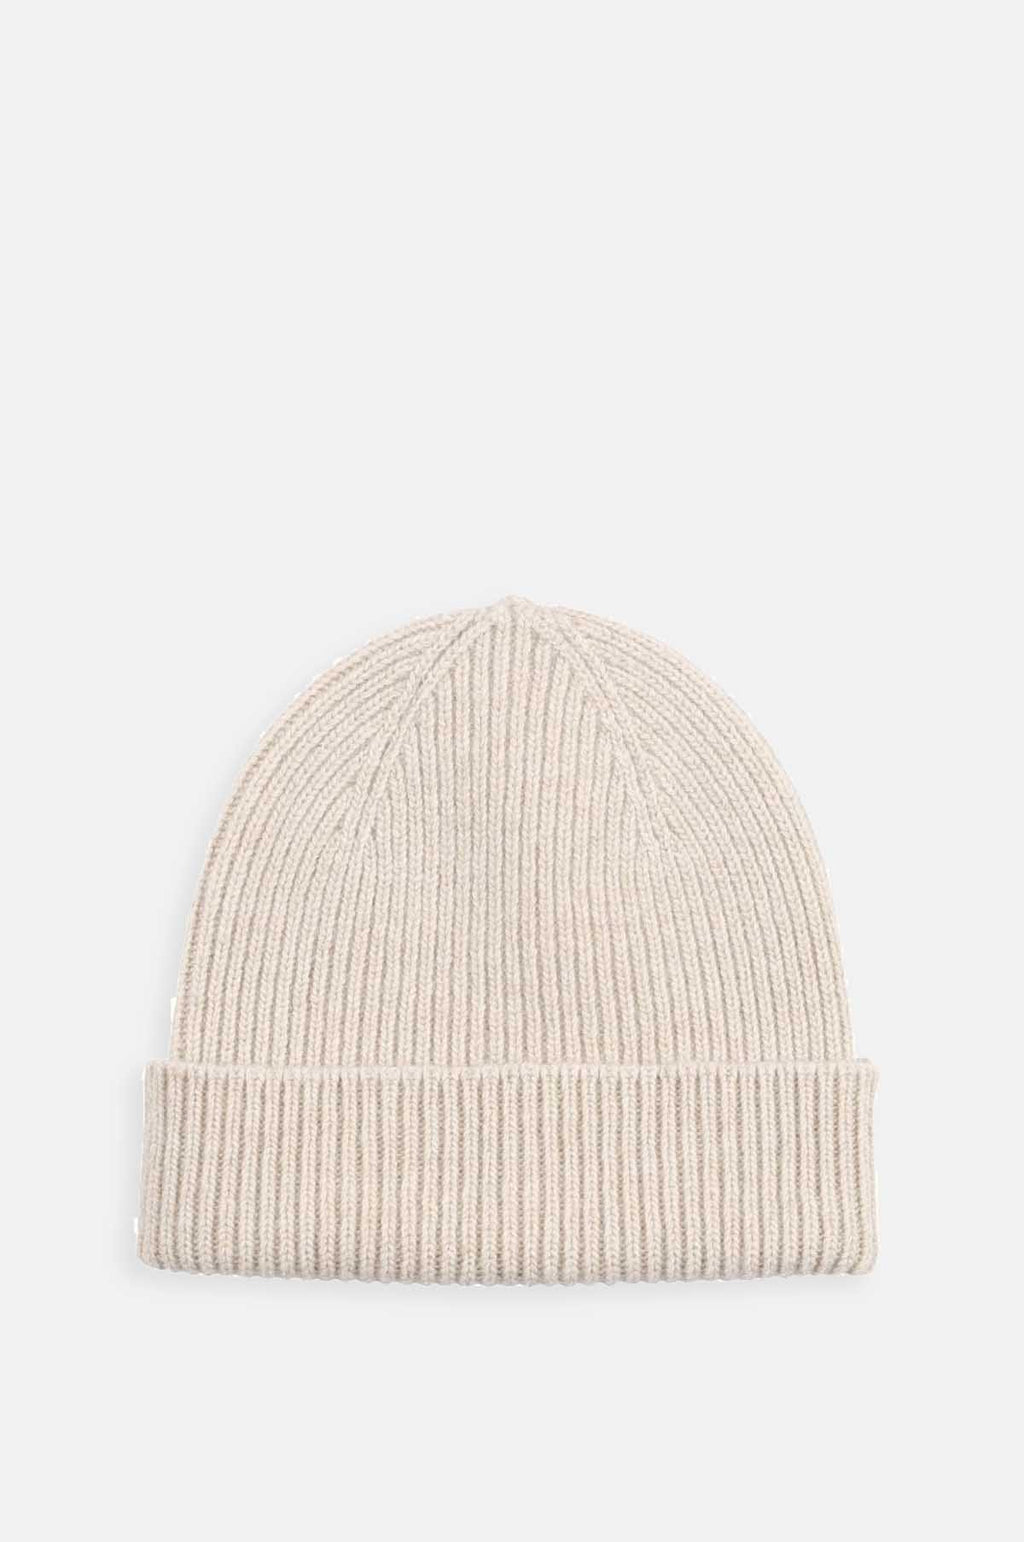 Merino Wool Hat in Ivory White